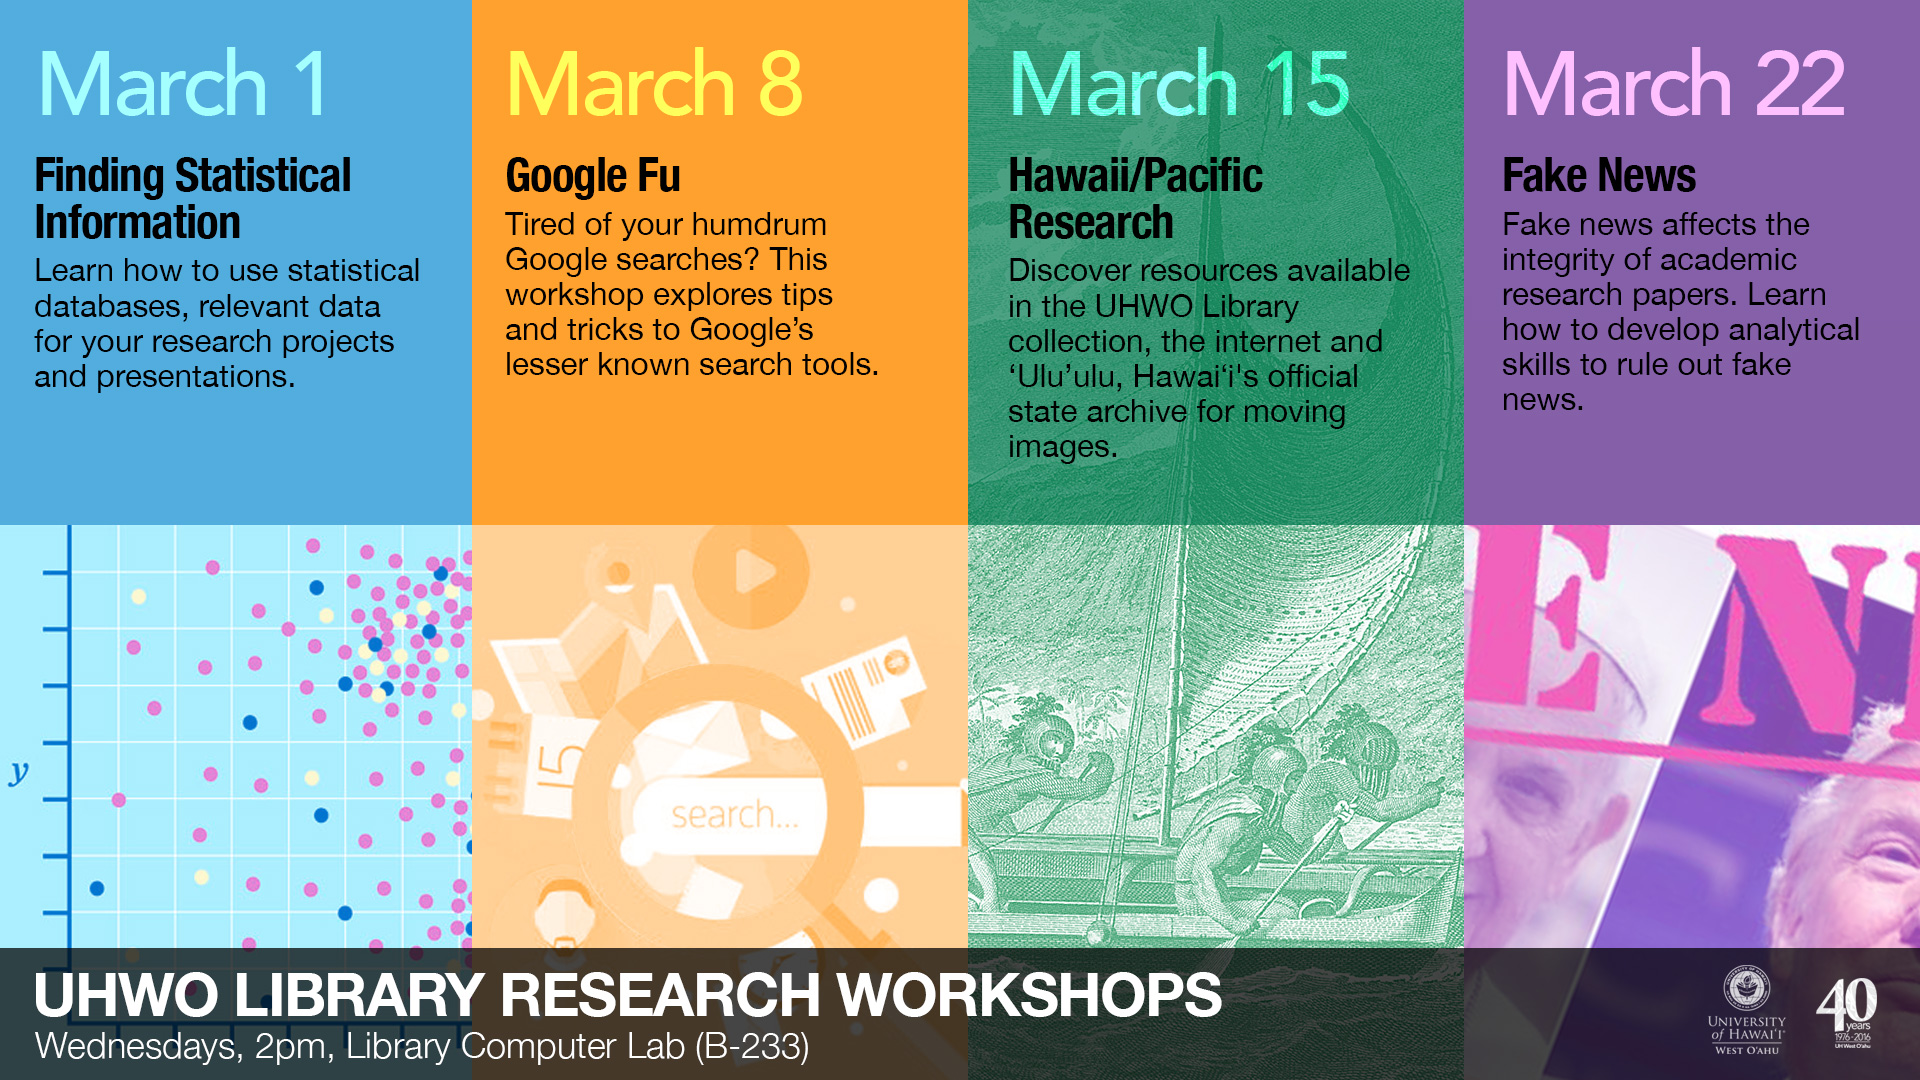 020 Libraryworkshopsmar2017 Ds Google Researchs Fearsome Research Papers Earth Mapreduce Deepmind Full